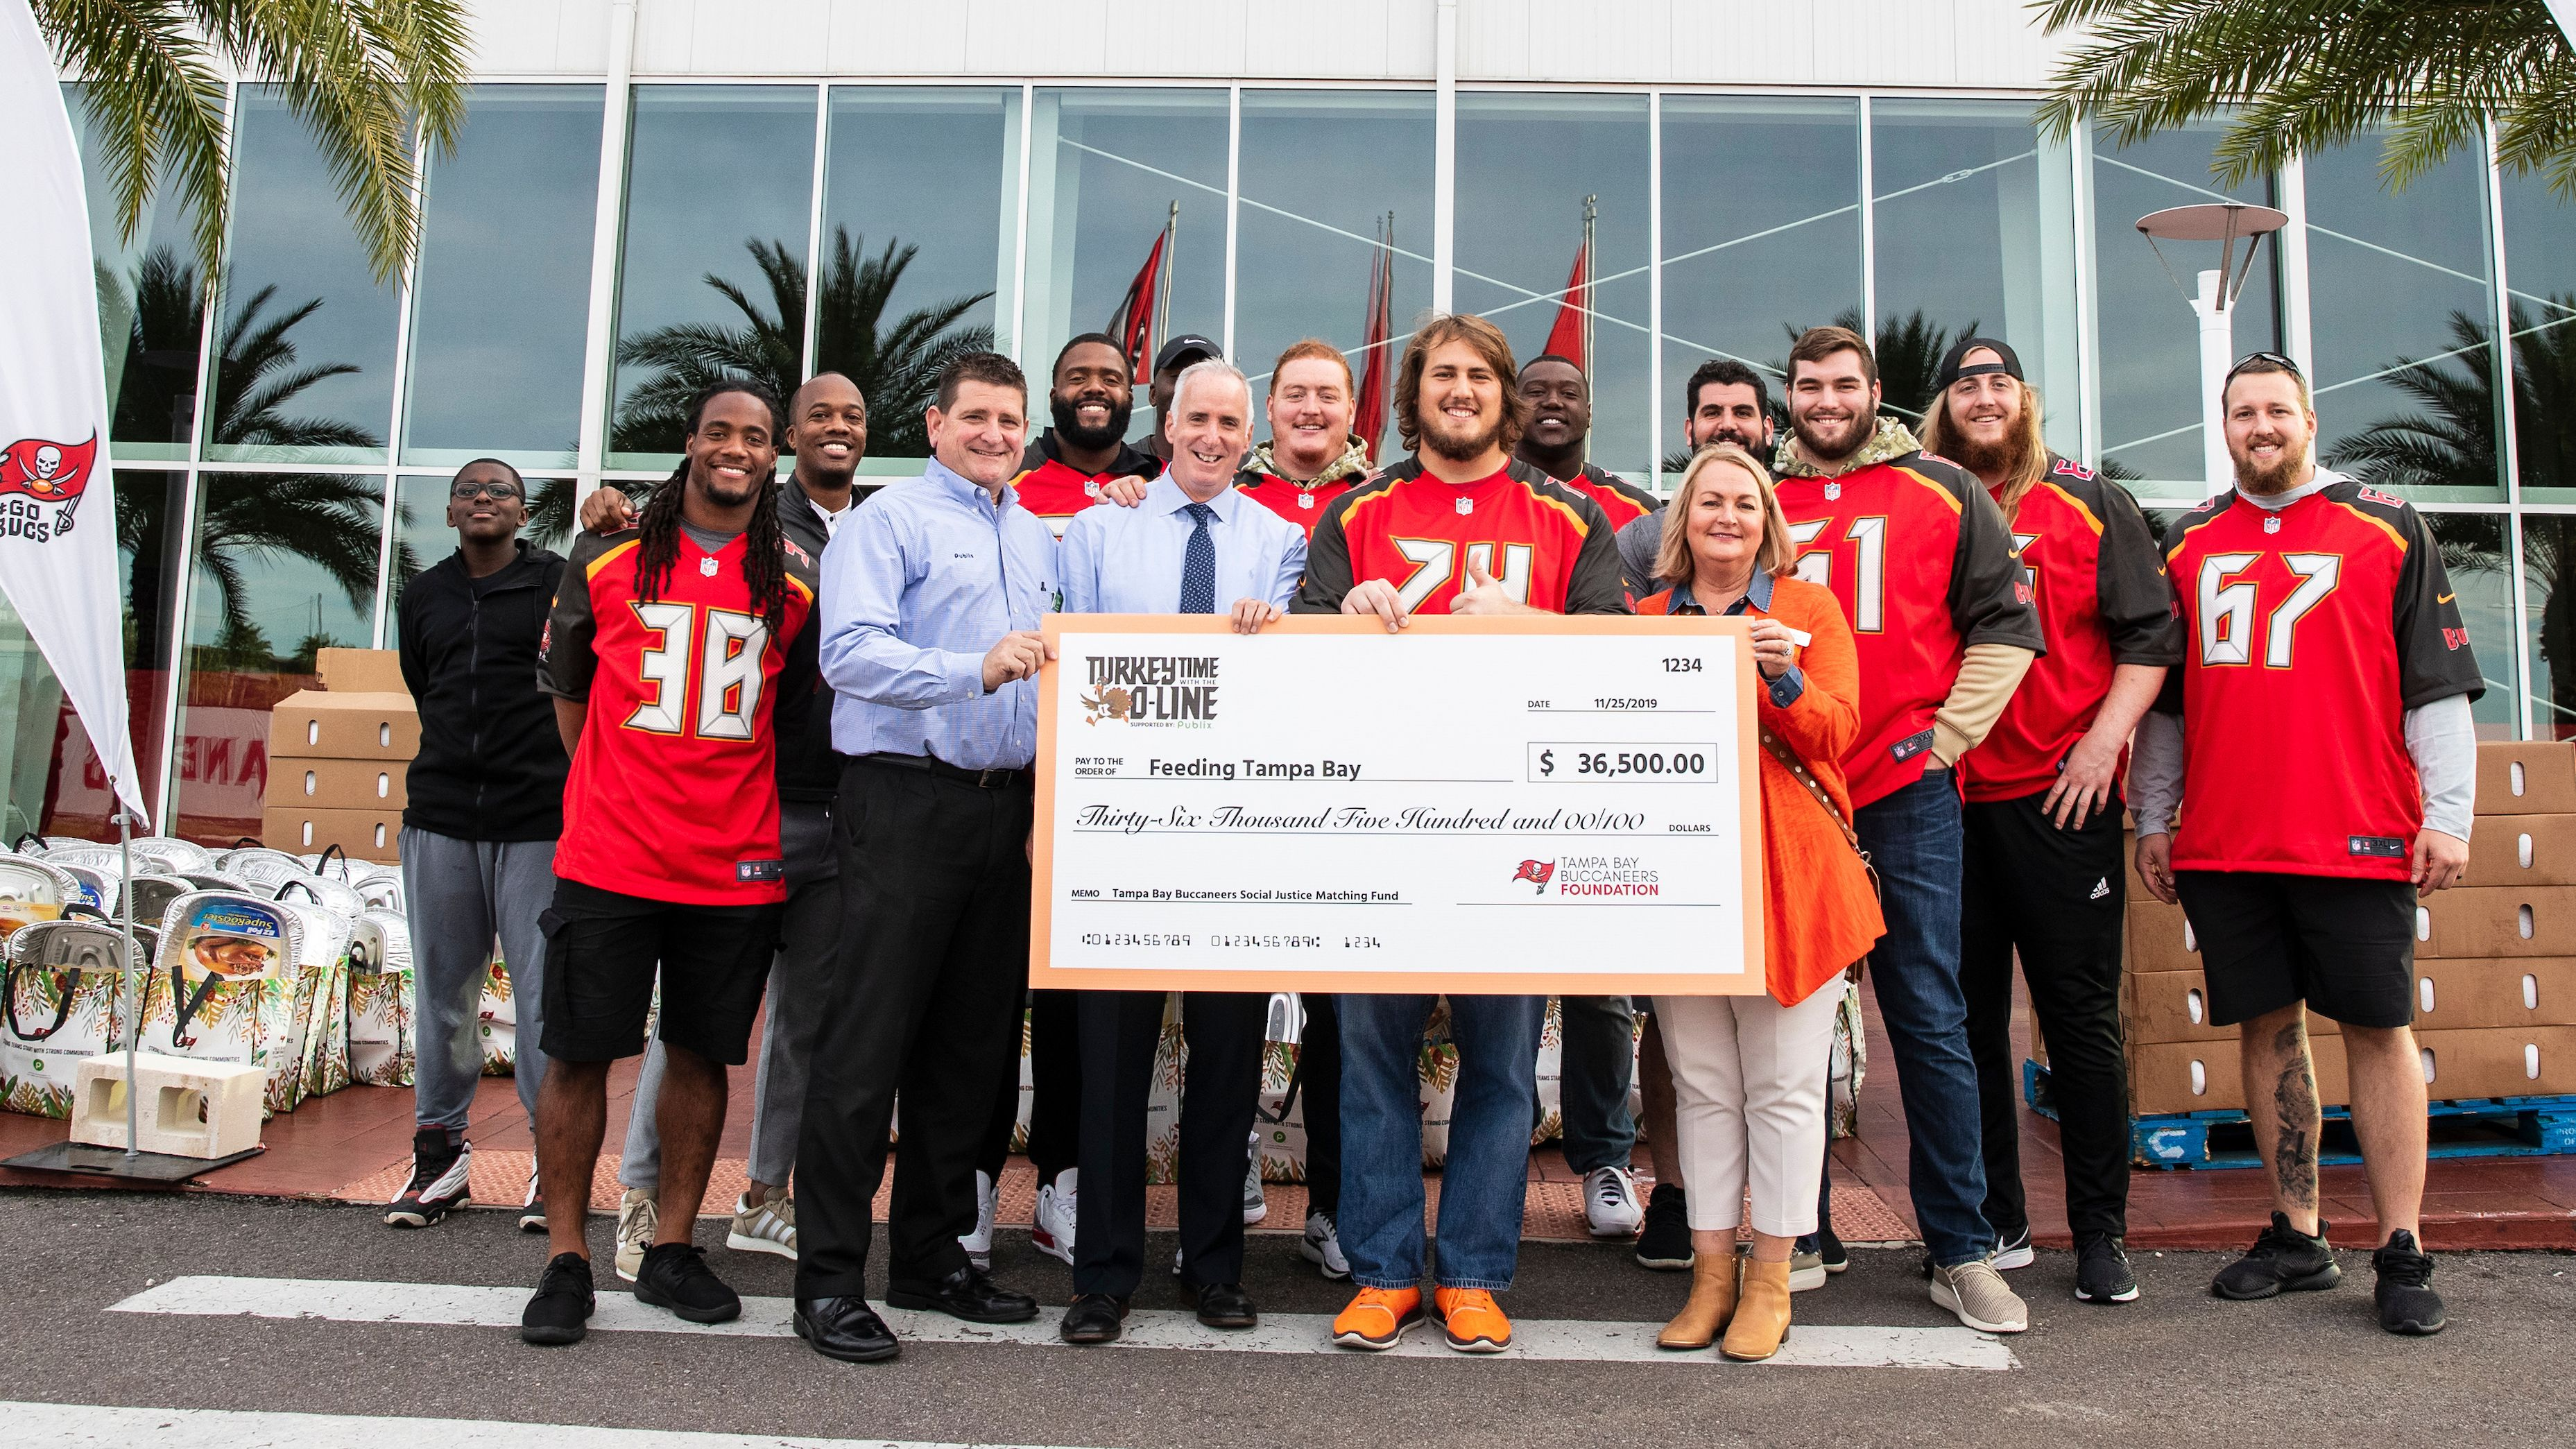 Bucs Players Provide Over 1,000 Meals to Bay Area Families Through 13th Annual Turkey Time with the O-line Event